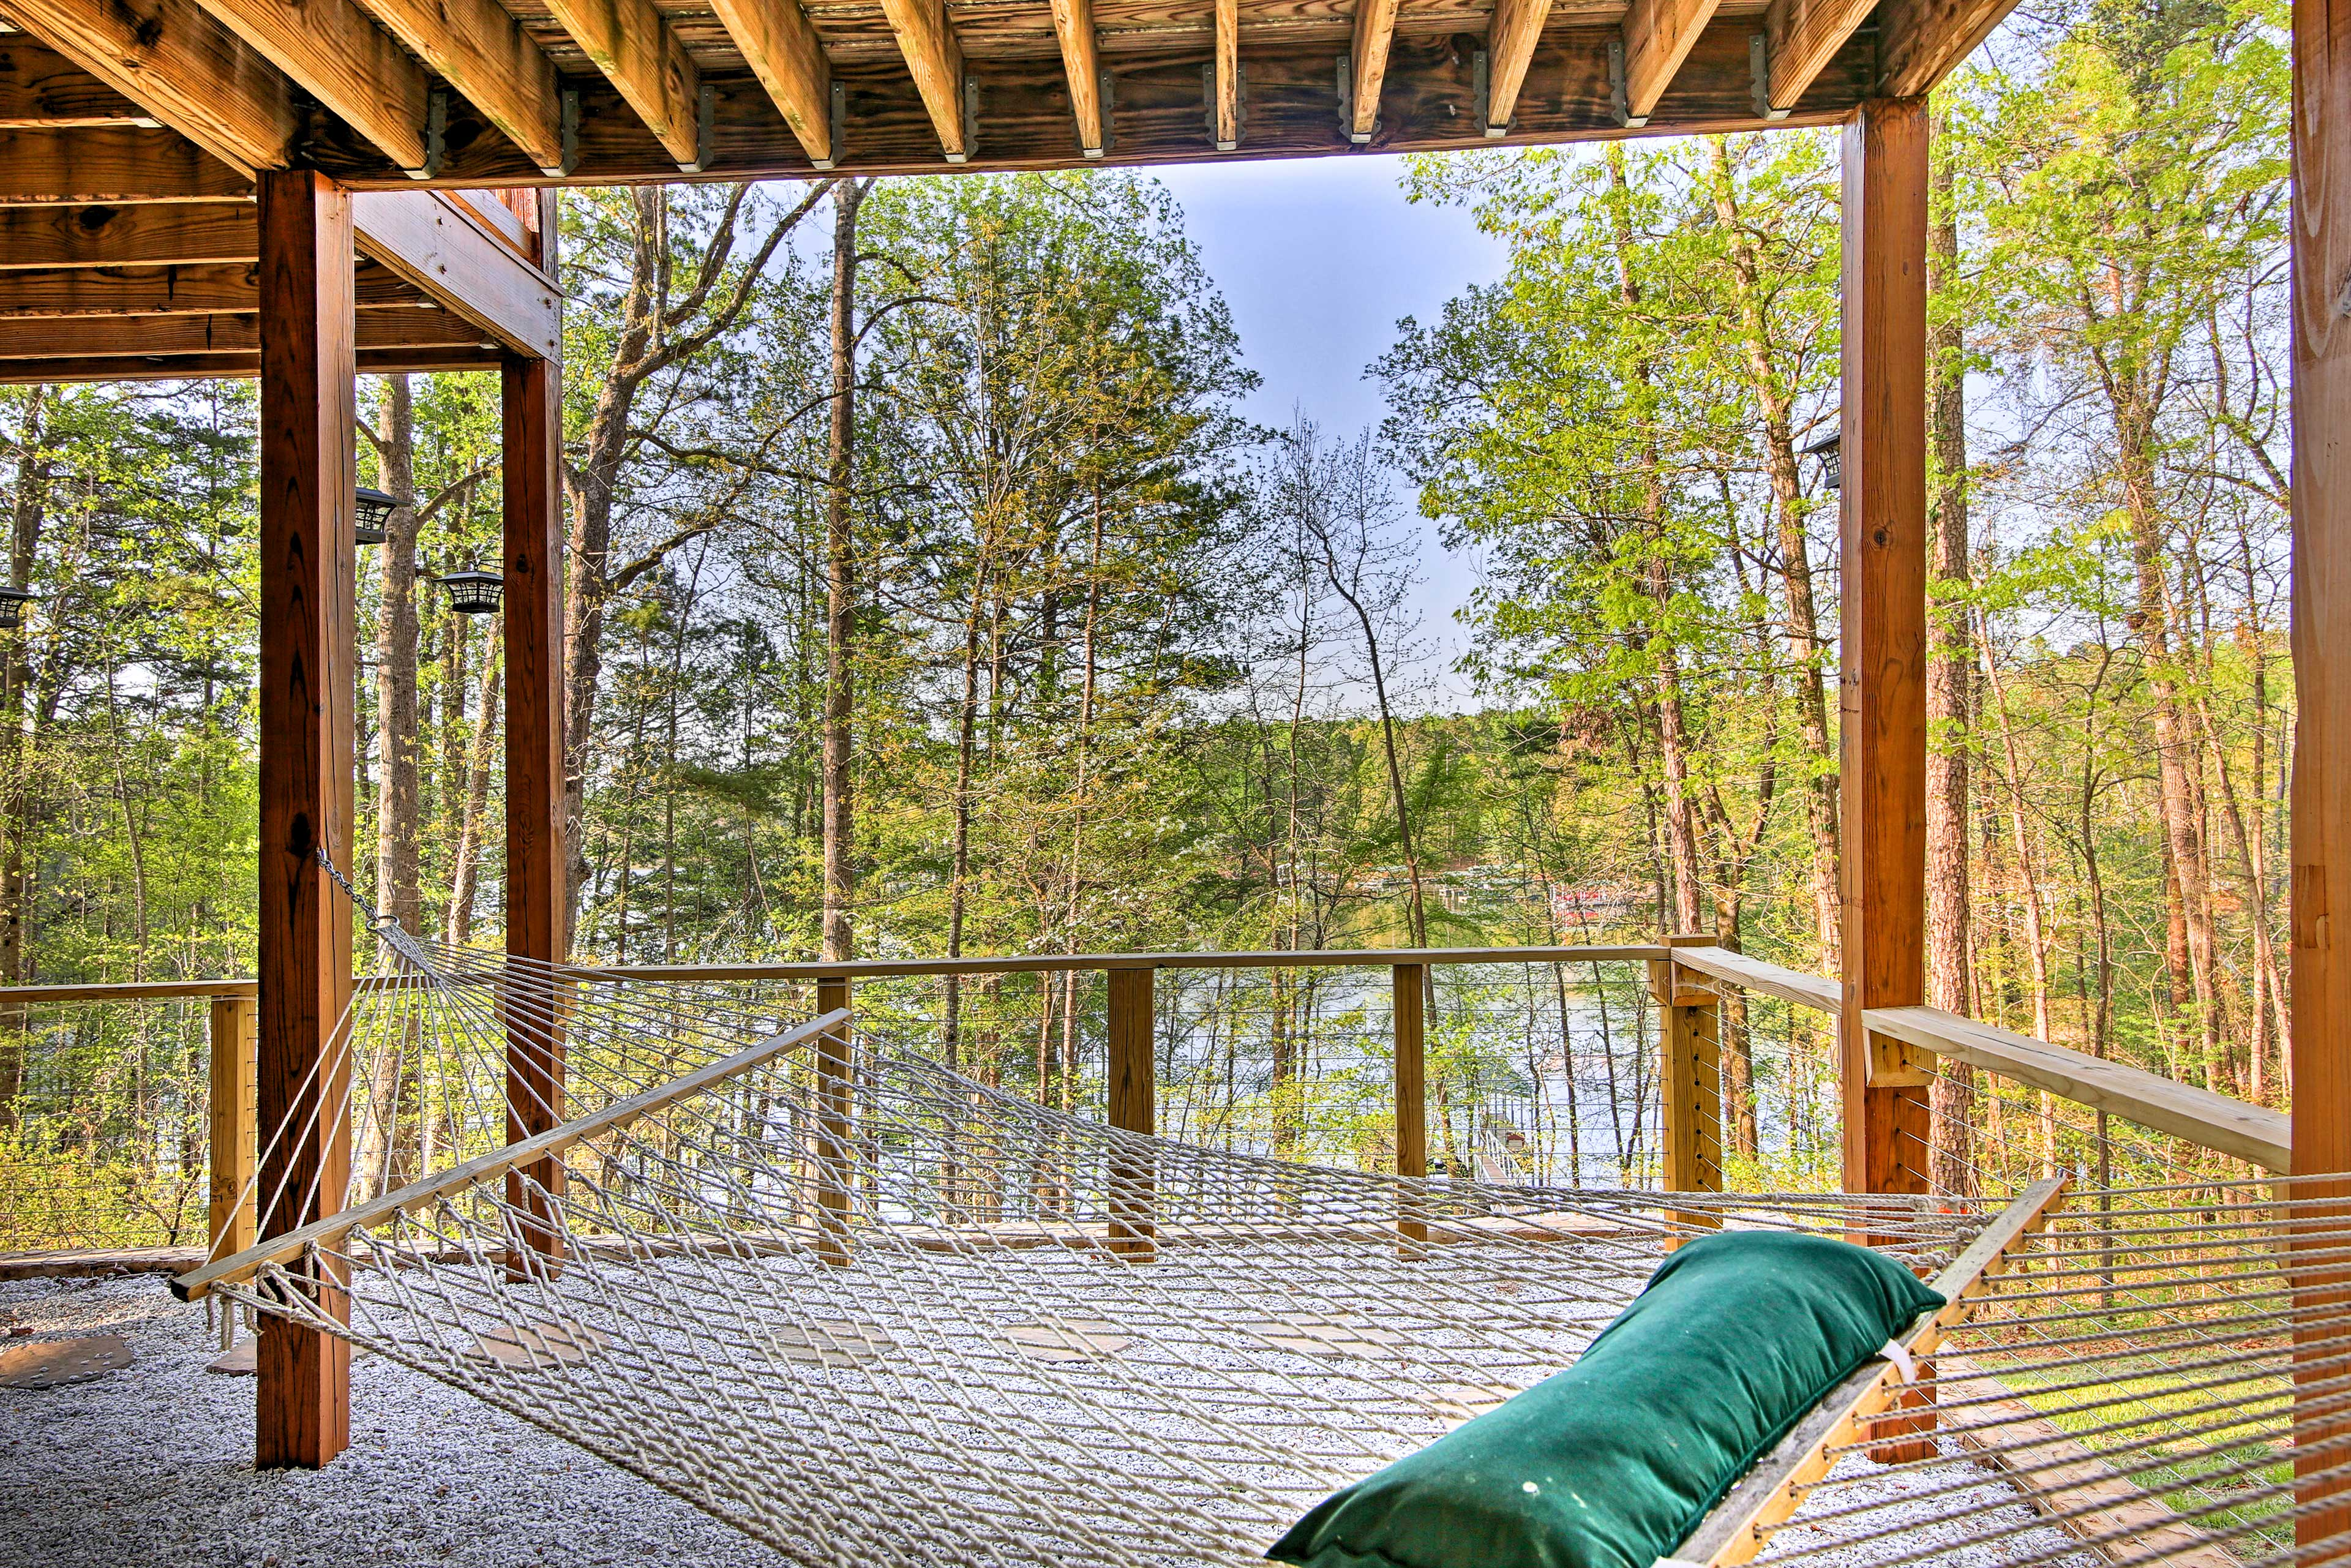 Let the sound of the lake lull you to sleep on the hammock.